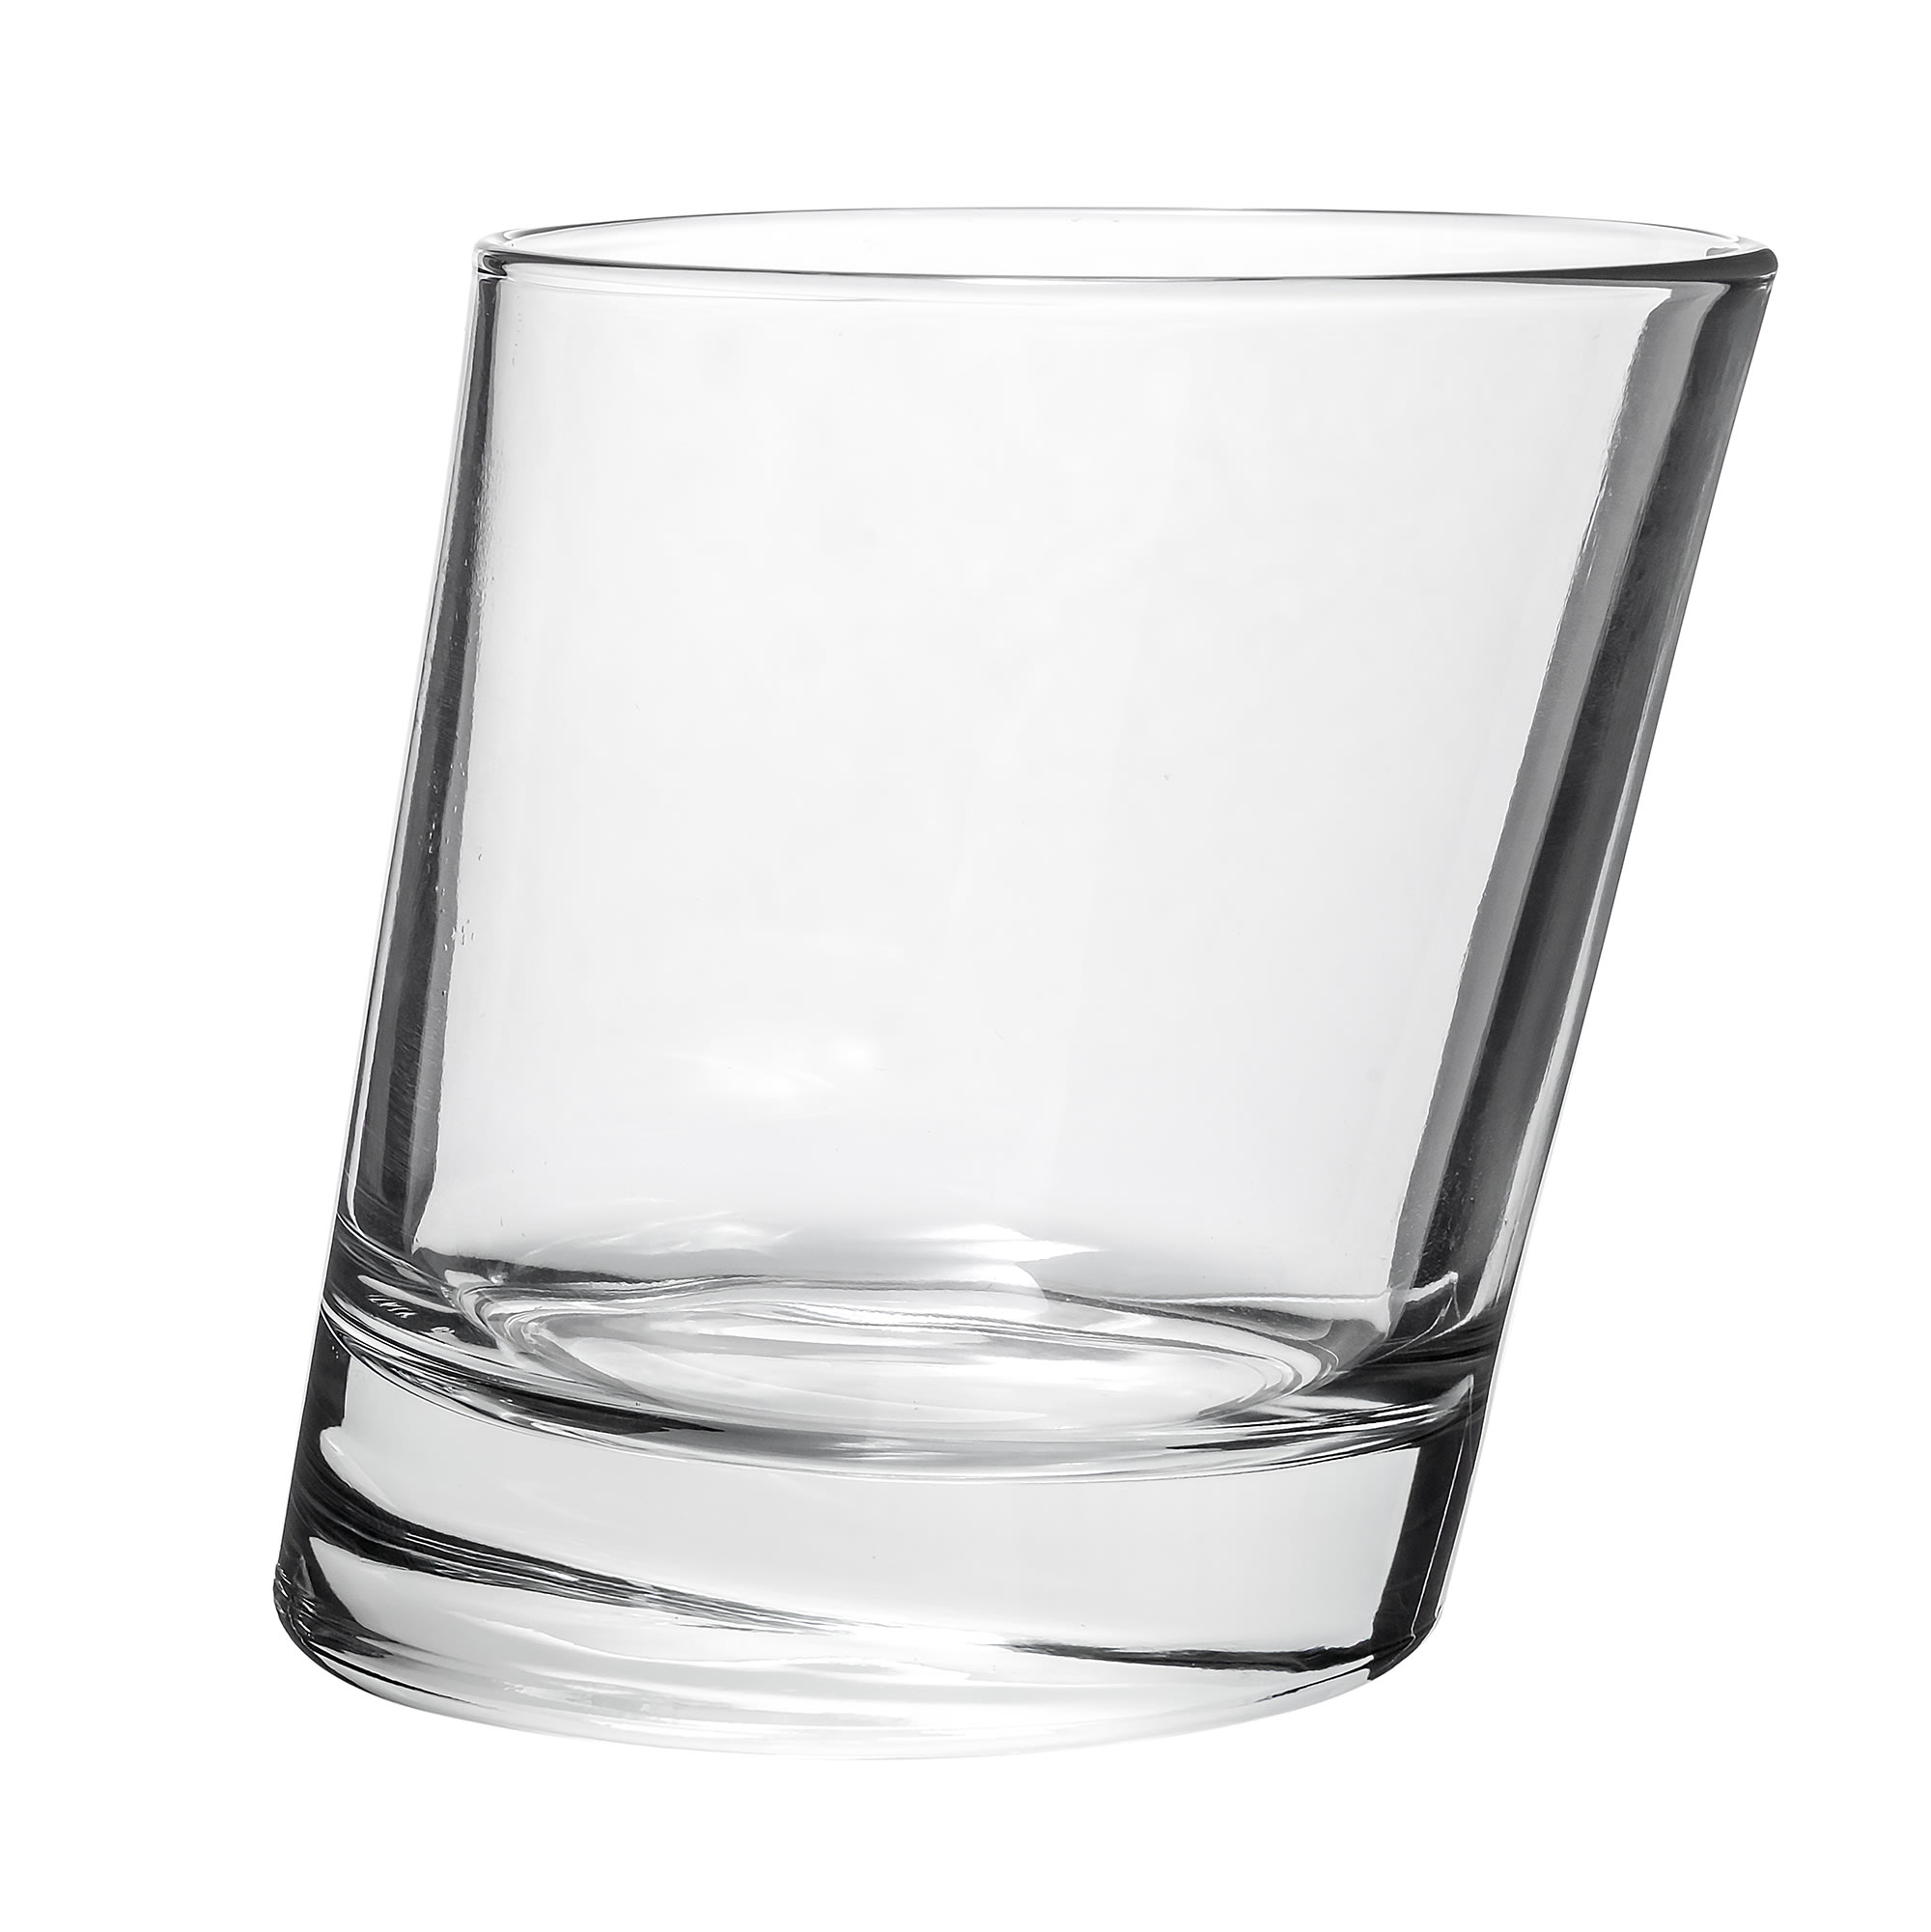 Libbey 11006821 11.75 oz Double Old Fashioned Glass - Pisa